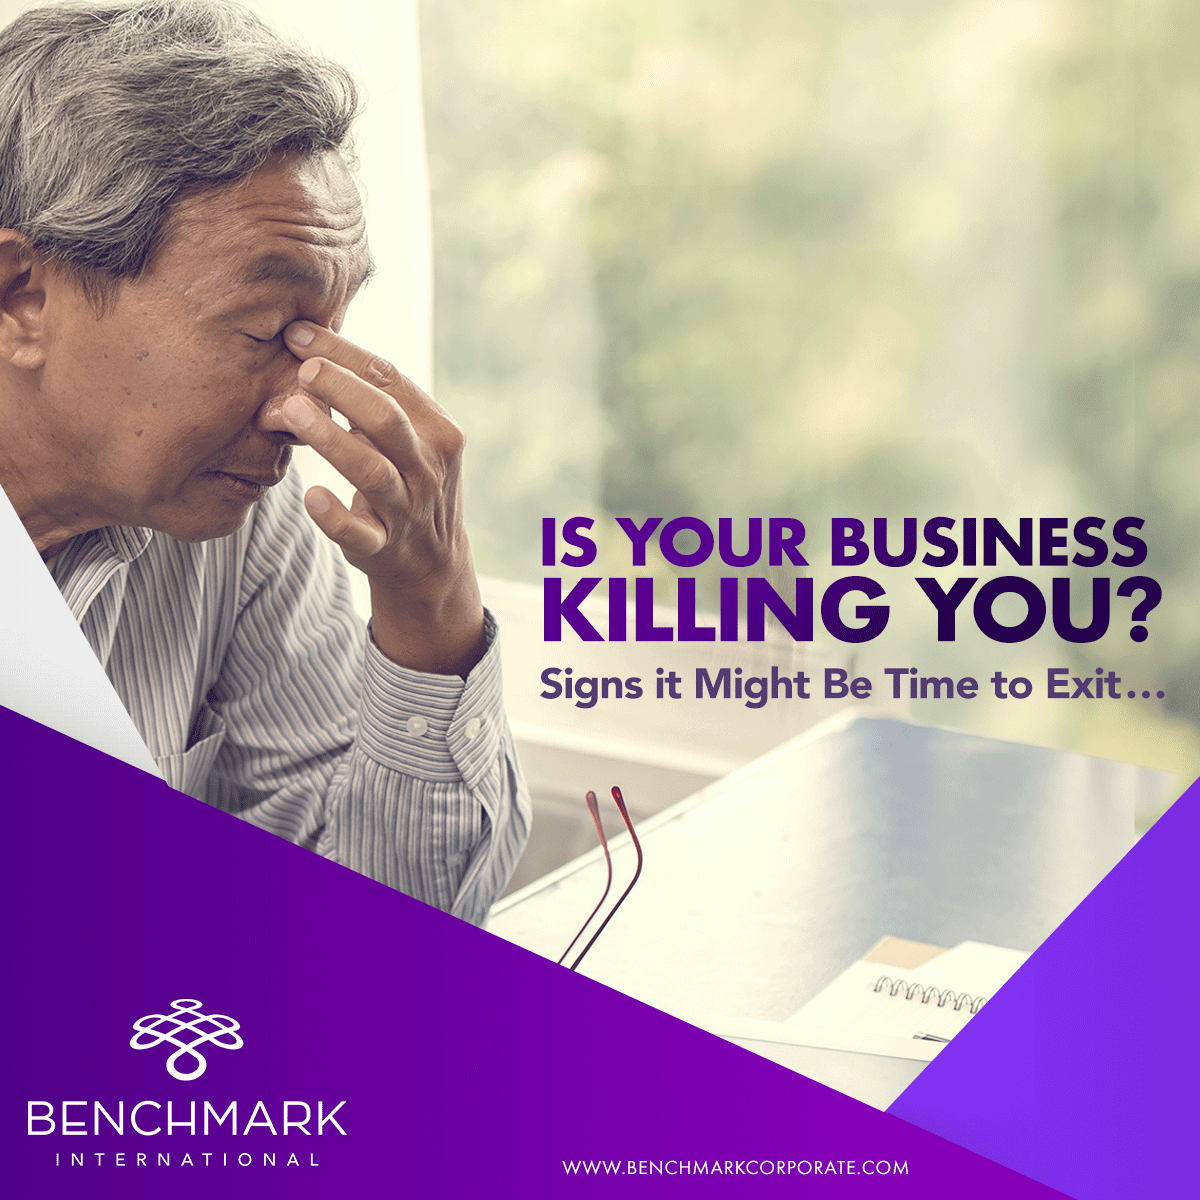 Benchmark-International---Is-Your-Business-Killing-You---Social